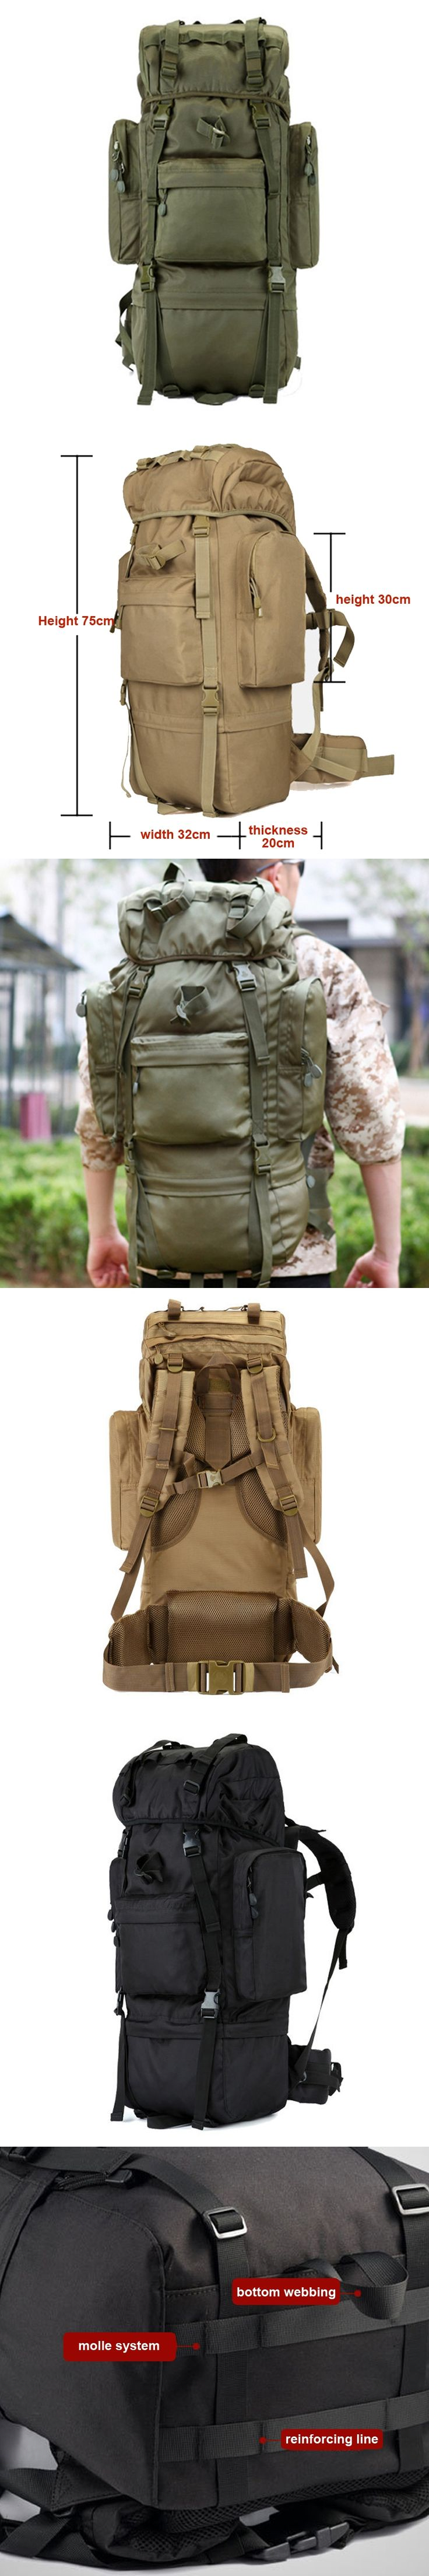 YUETOR 65L Hiking Camping Bag Outdoor Travel Sport Military Tactical Rucksacks Mochilas Militares Super Large Military Backpack